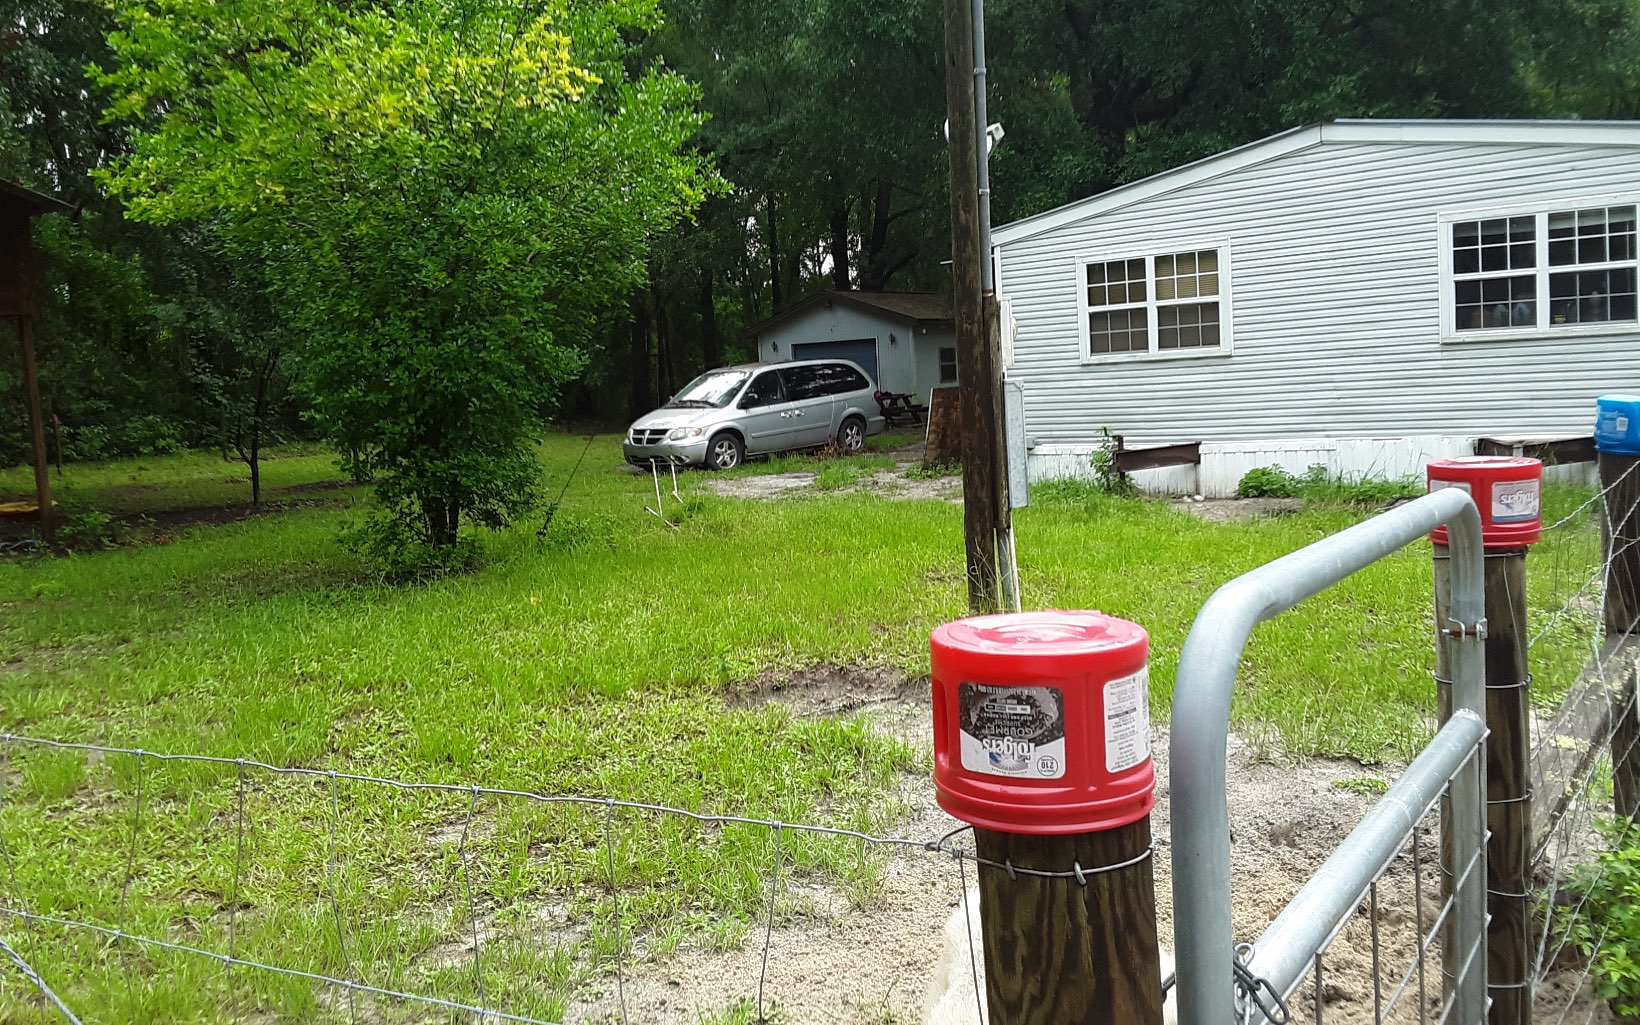 2 Wells 2 Septic Tanks, High Dry Land, Beautiful Trees on Lot and Good Roads, Great Rental Potential, Home has Porch on Front and Carport on Back. Can Purchase The Lot that has well, septic and power pole for $29,900